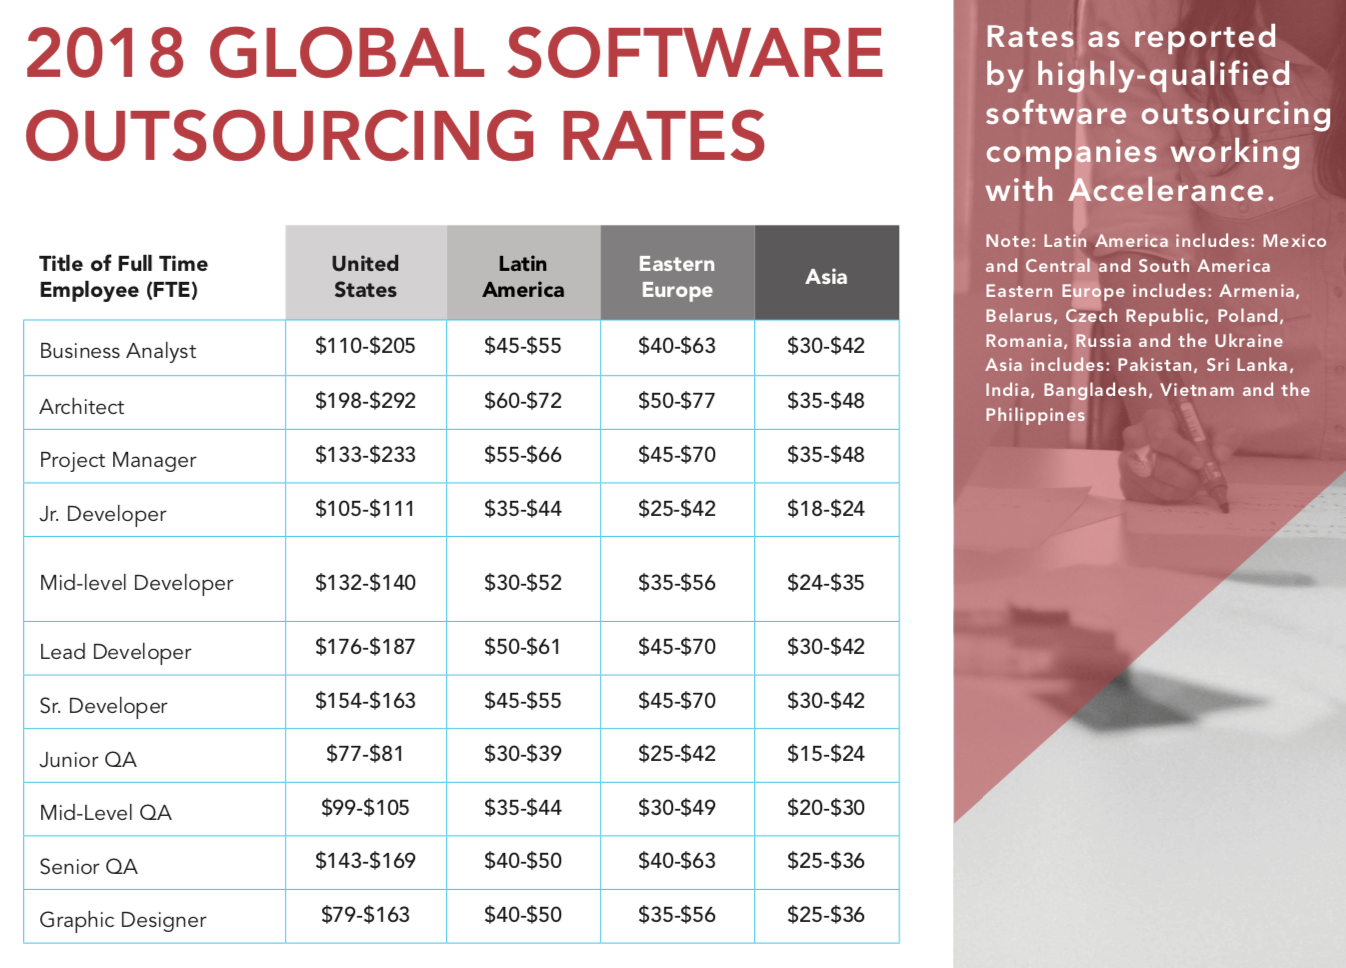 2018 Outsourcing Rates